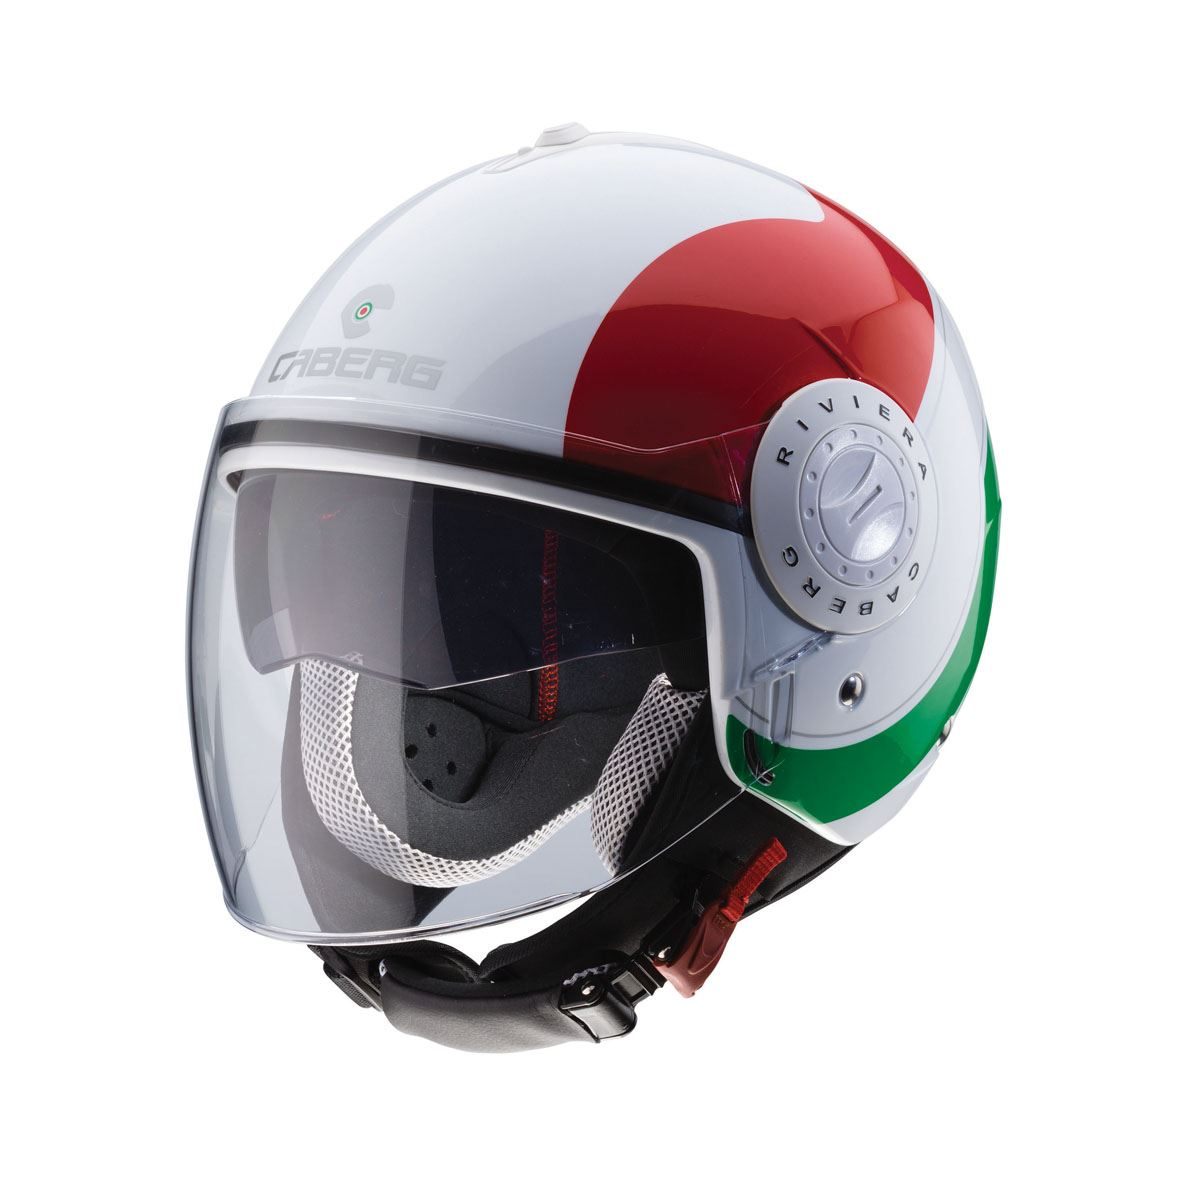 Caberg-Riviera-Open-Jet-Face-Motorcycle-Scooter-Ventilated-Helmet thumbnail 5